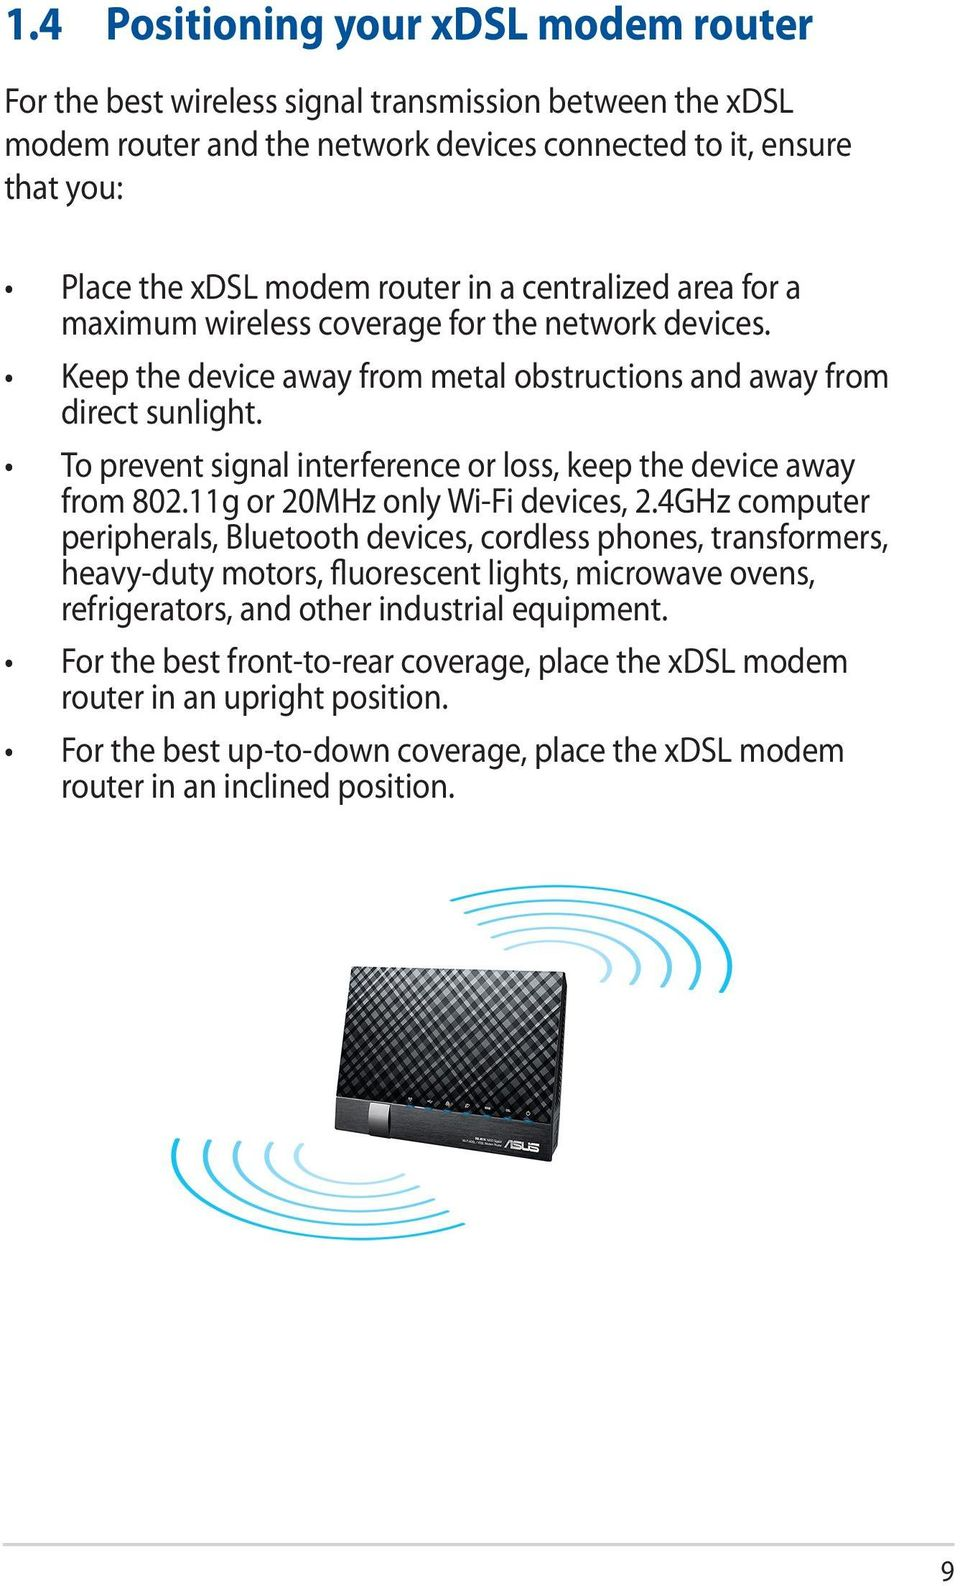 To prevent signal interference or loss, keep the device away from 802.11g or 20MHz only Wi-Fi devices, 2.